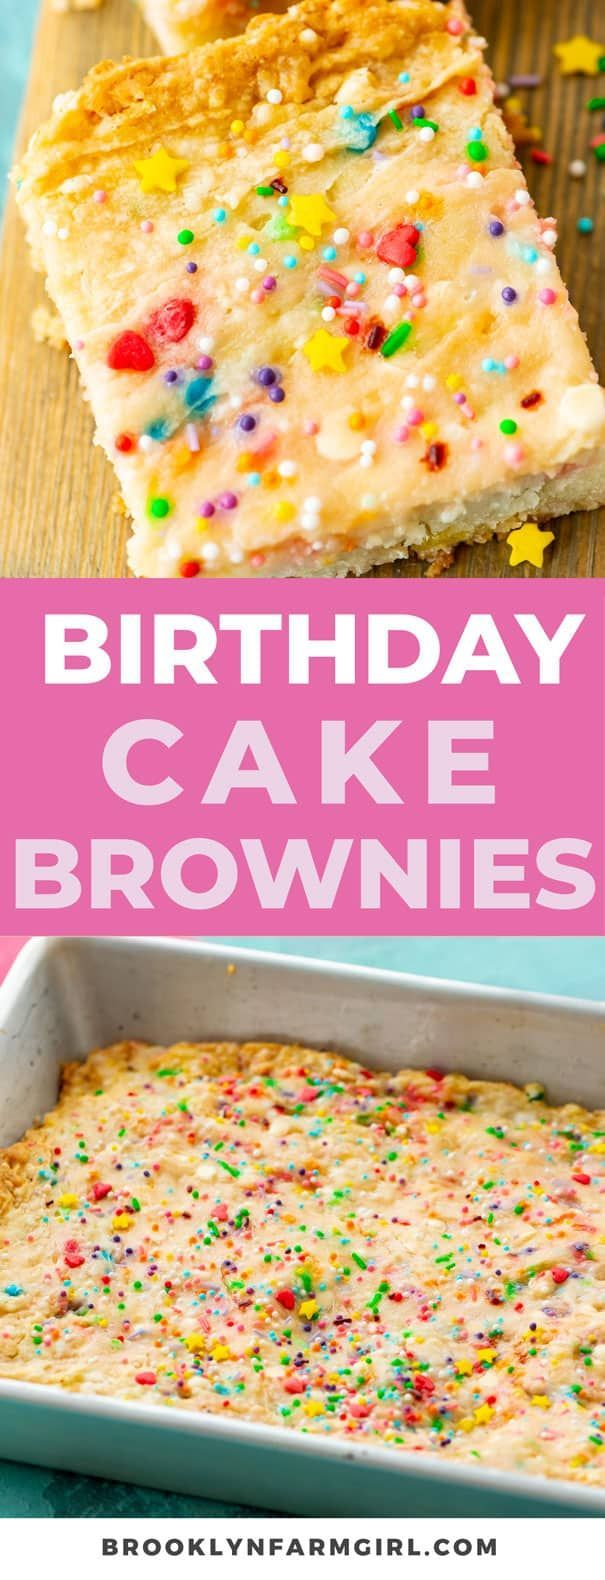 Birthday Cake Brownies Easy to make sprinkle Confetti Cake Batter Brownies recipe. These funfetti b